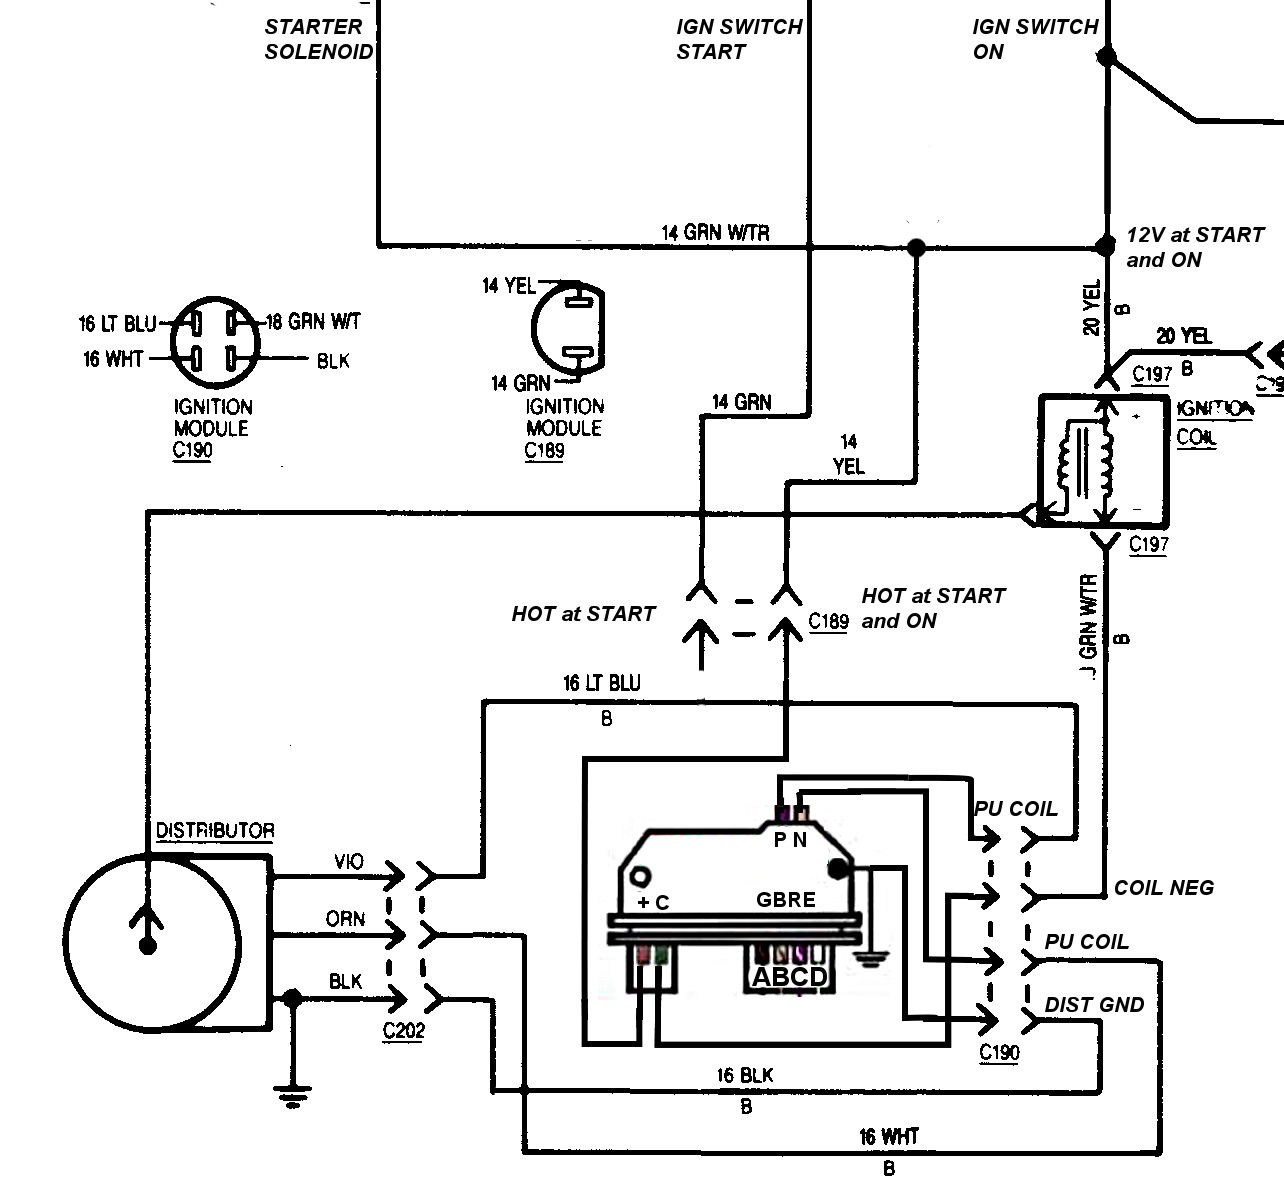 5 pin gm hei ignition module wiring diagram  gm ignition